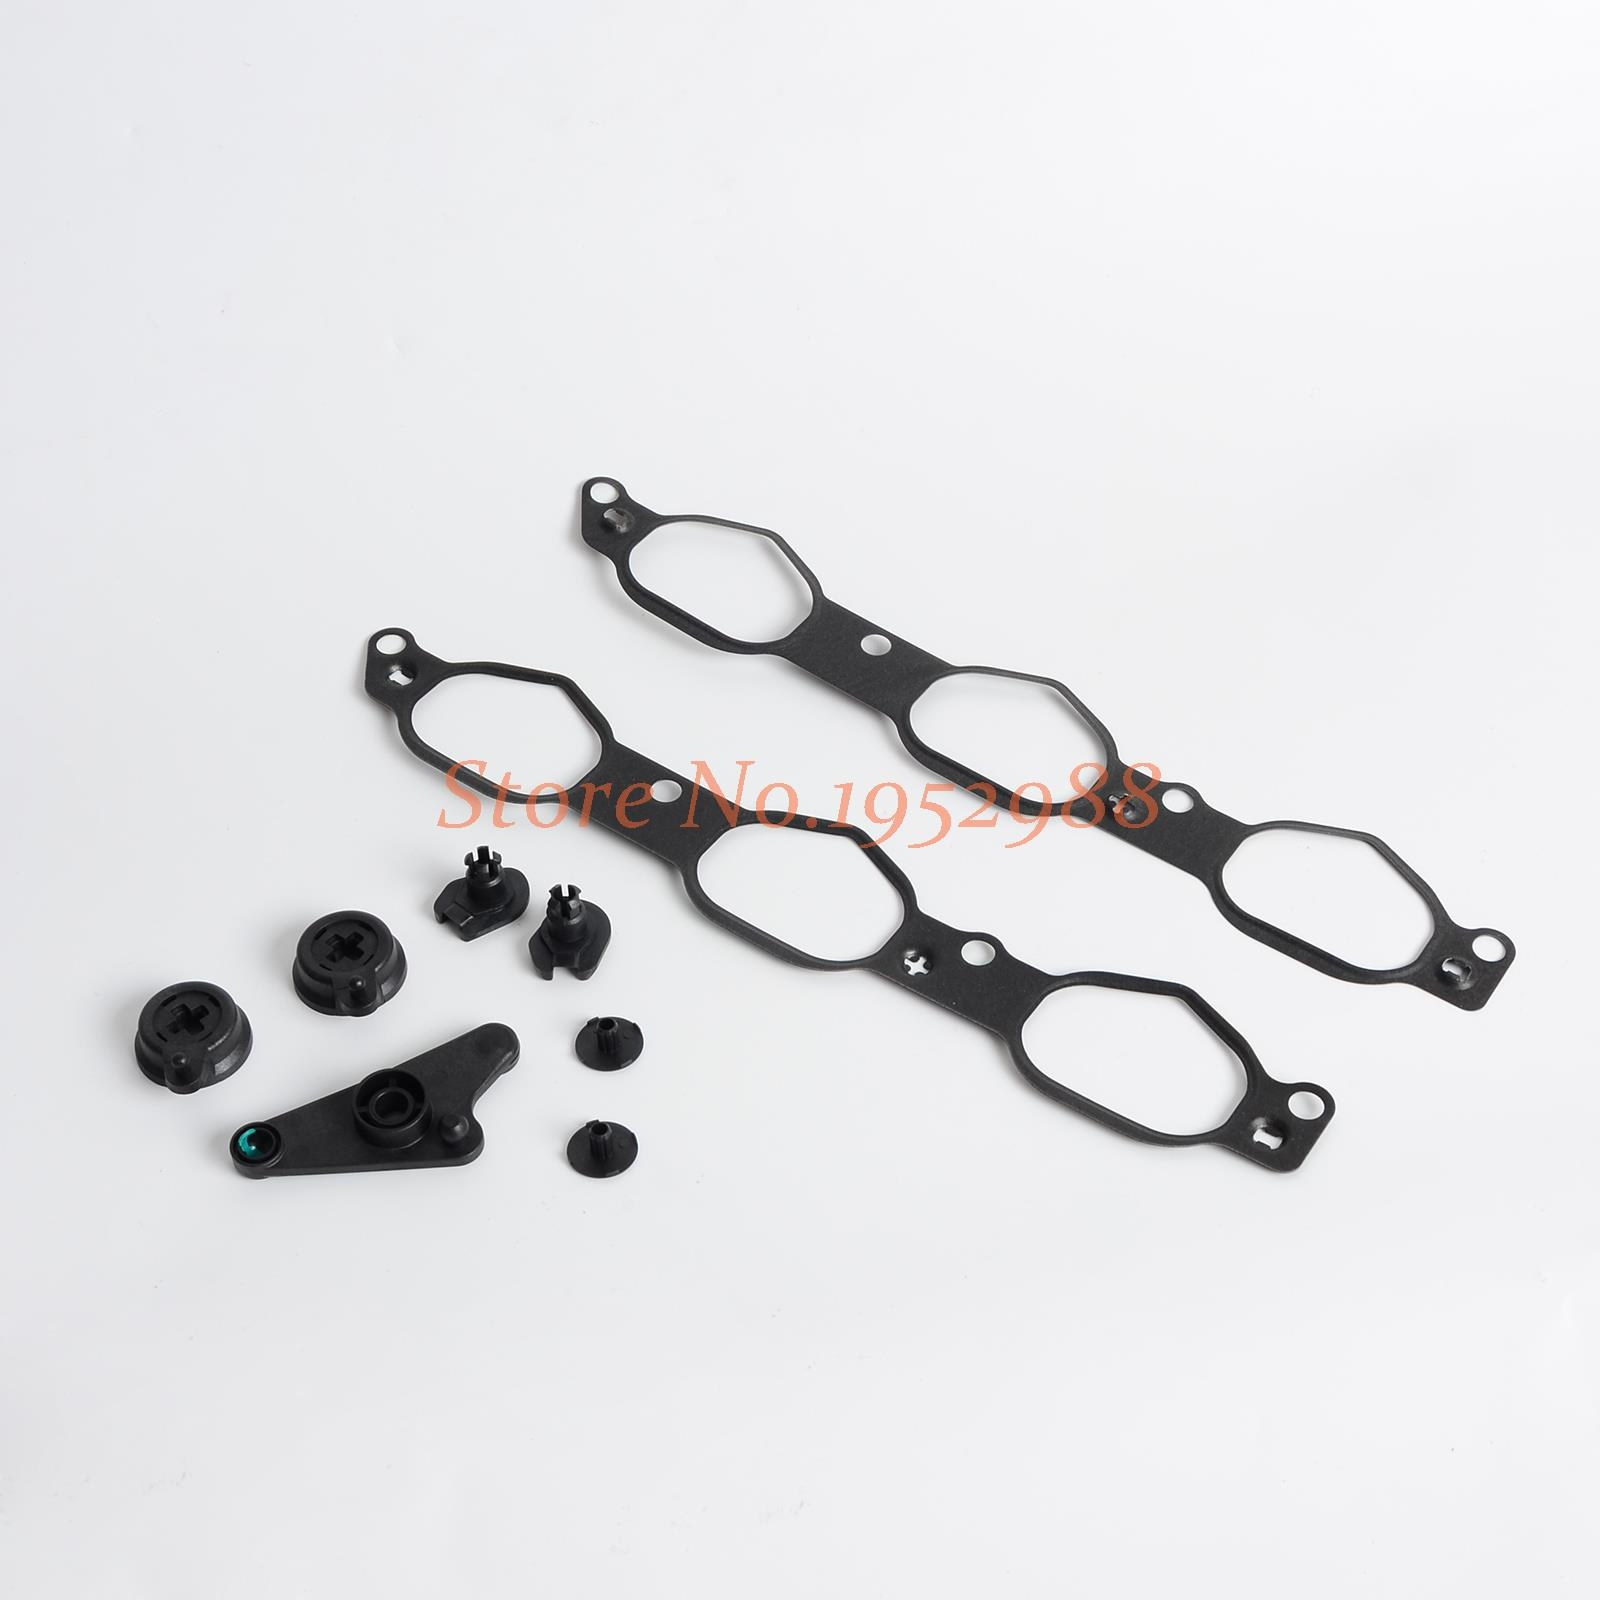 61.94$  Watch here - http://alimoi.worldwells.pw/go.php?t=32726408854 - Intake Manifold Air Flap Runner Repair Kit Gasket for Mercedes-Benz  2721402101 61.94$